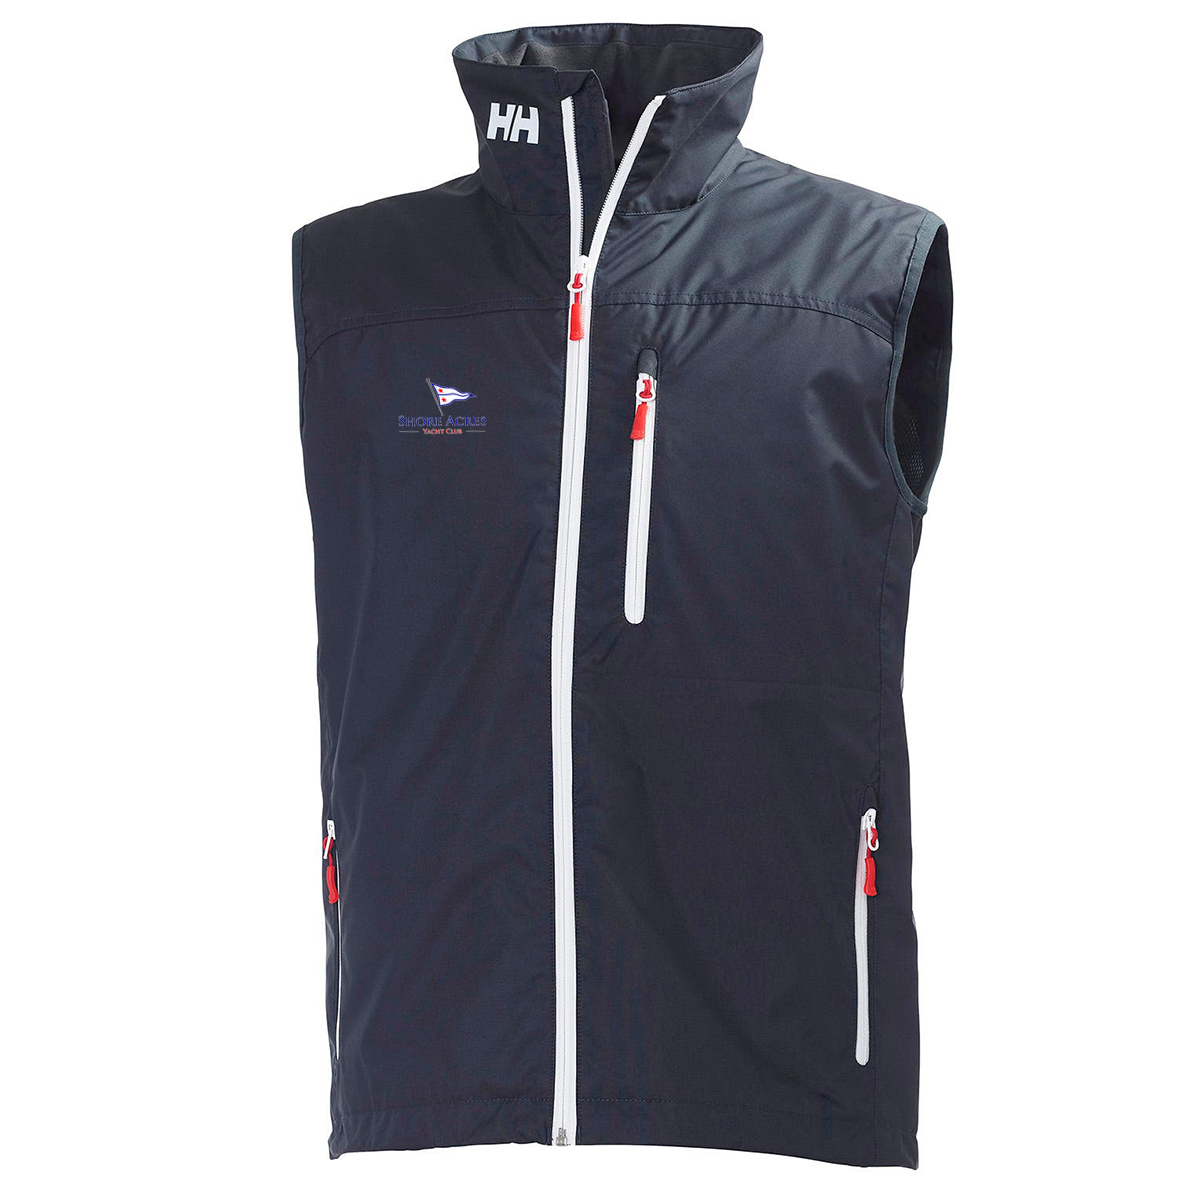 Shore Acres Yacht Club - Men's Helly Hansen Crew Vest ( SAYC401)